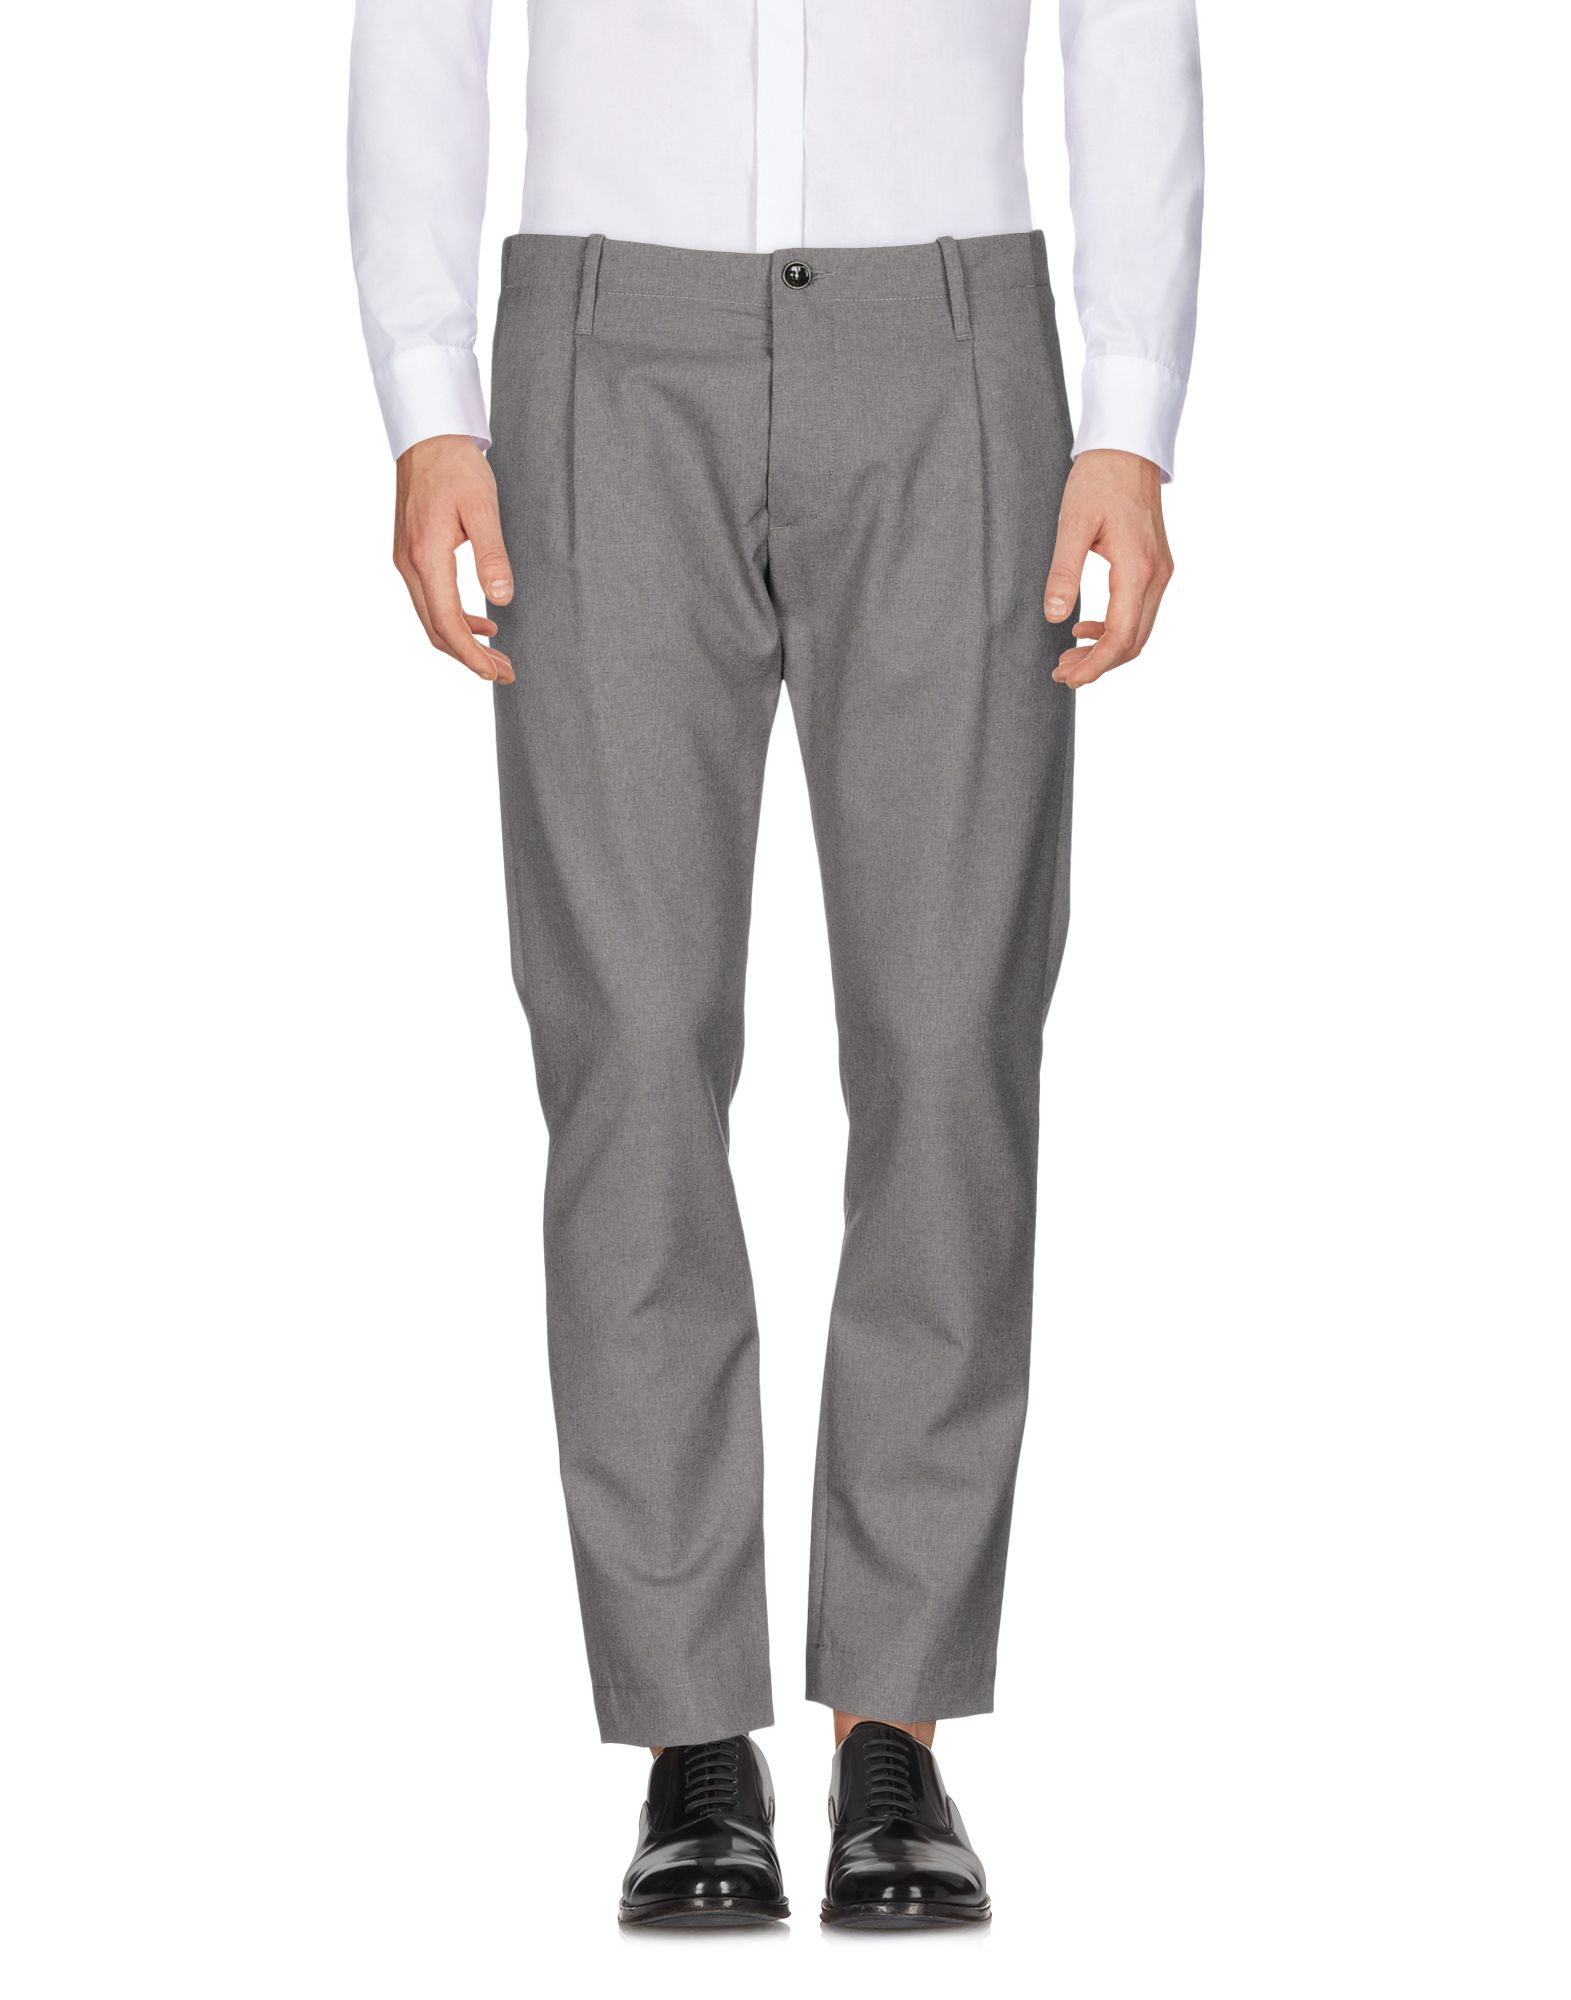 Pantalone Nine:Inthe:Morning Uomo - Acquista online su